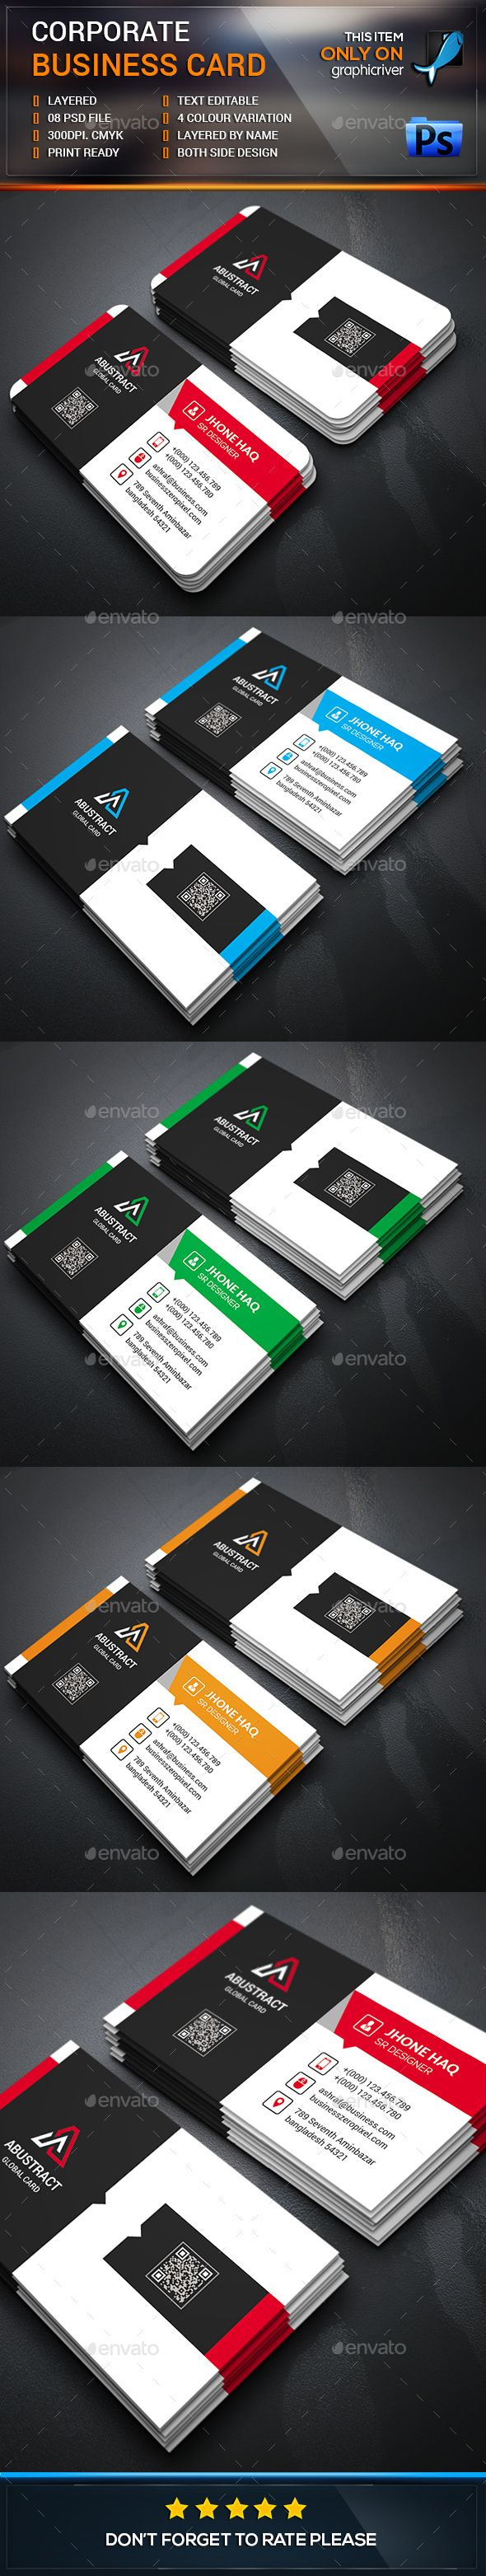 109 best bussines cards ideas images on pinterest business card here is a free online business analysis see exactly what your competitorsare flashek